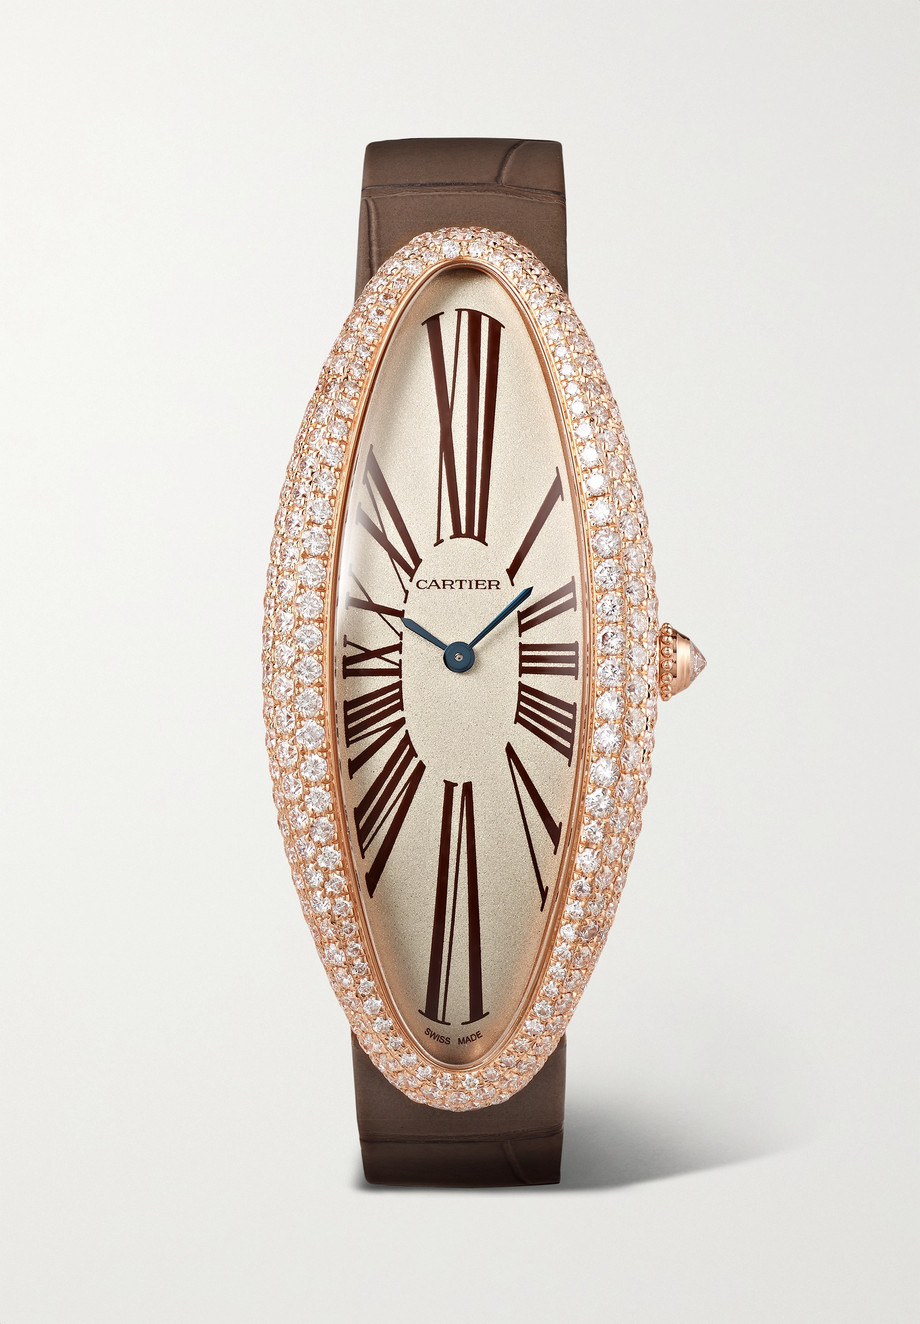 Cartier Baignoire Allongée 23mm extra large 18-karat rose gold, alligator and diamond watch